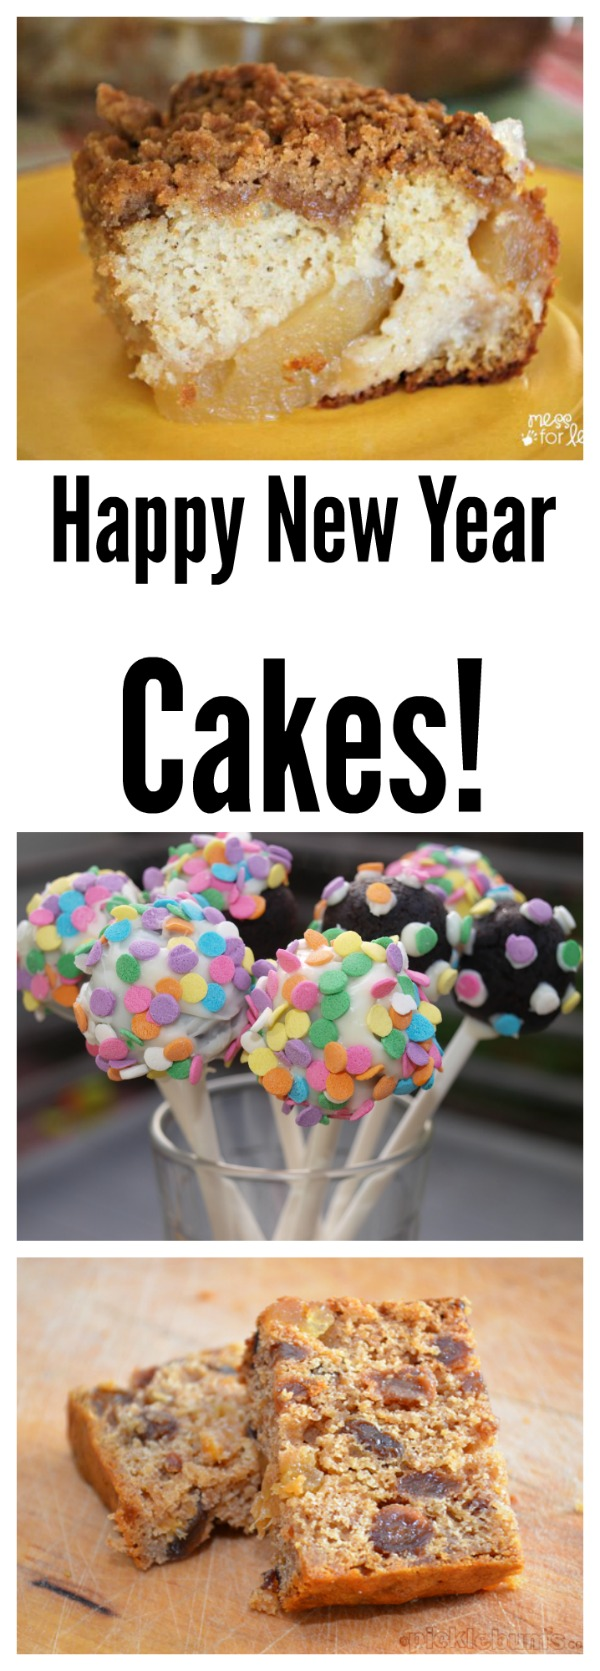 Happy New Year Cakes! Create a new tradition with these celebration recipes | The Jenny Evolution